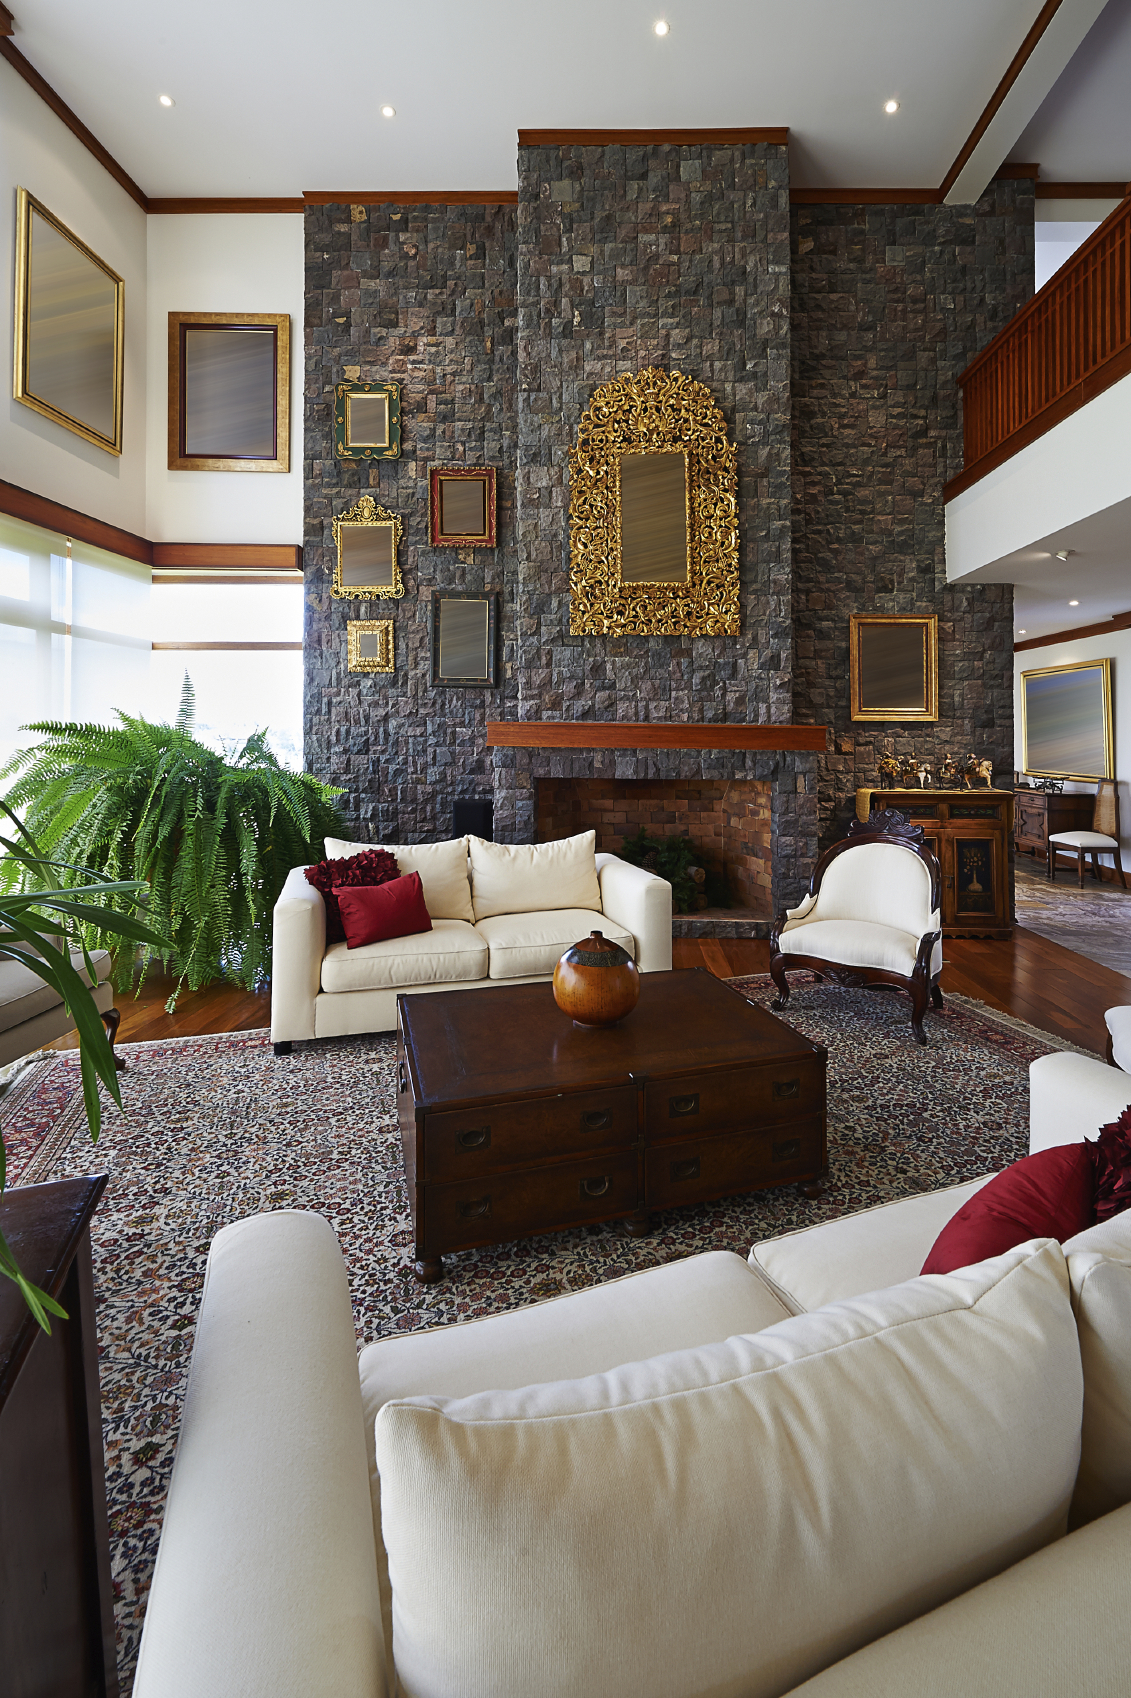 this luxurious room is dominated by massive stone fireplace wall looming over a rich hardwood